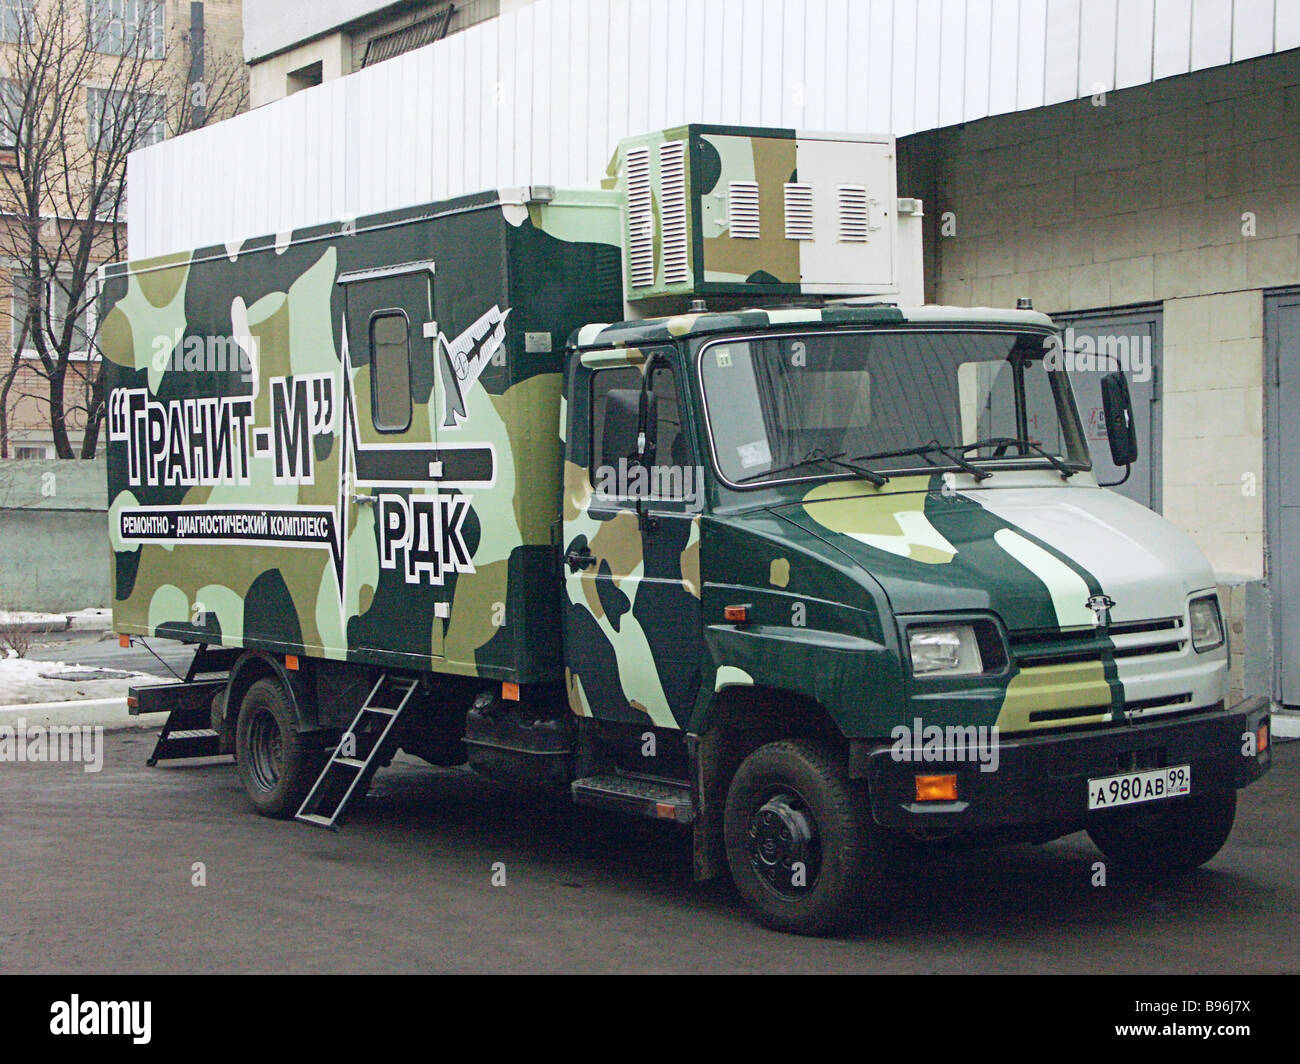 The Granit M multi purpose mobile test and maintenance system of Russian design and manufacture caters for radio - Stock Image